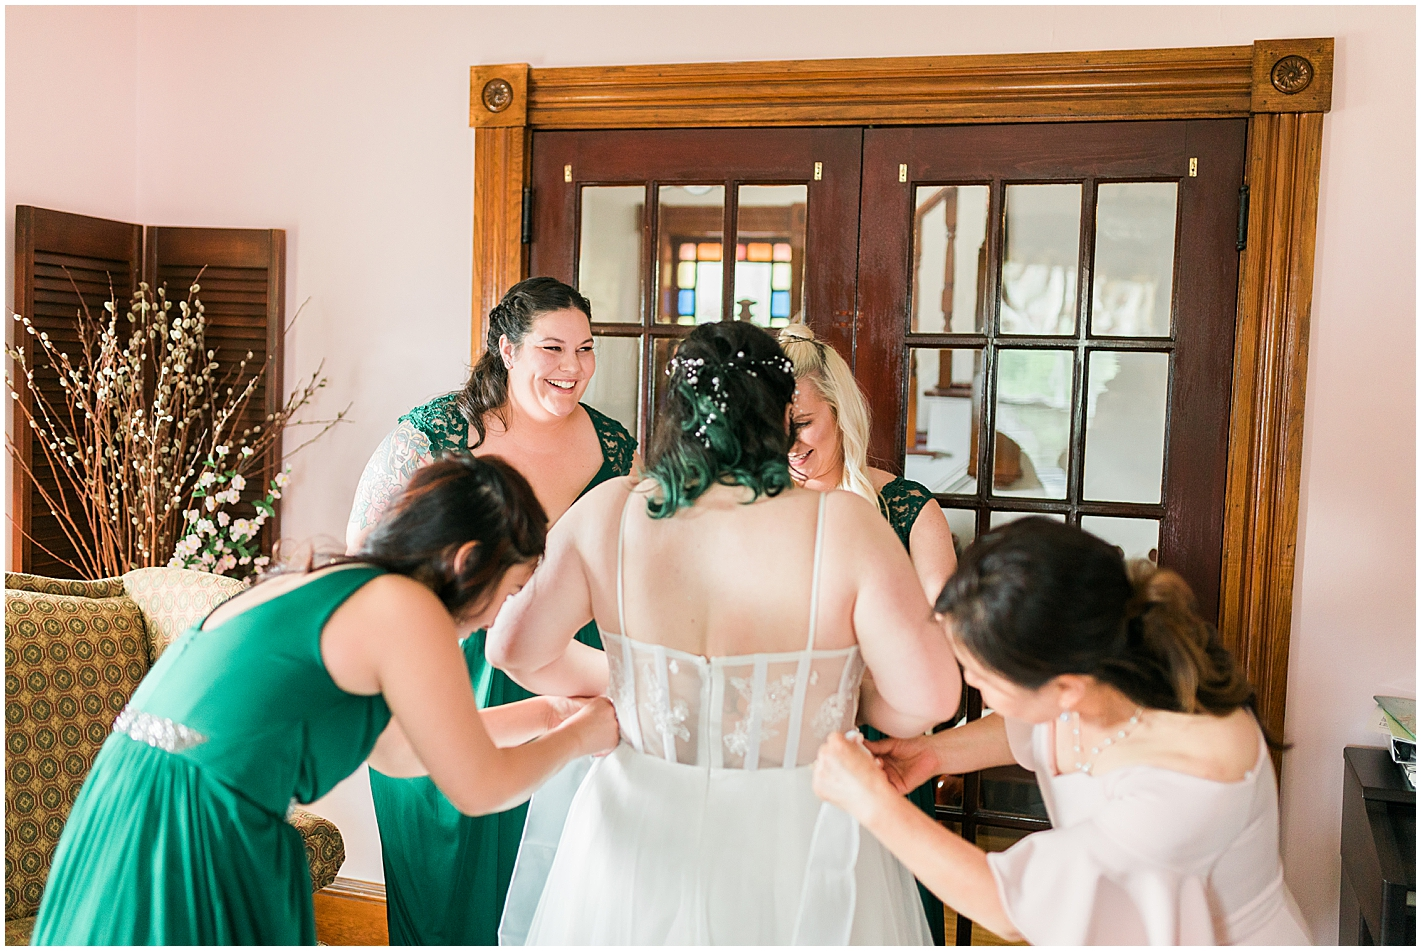 Sheer back Wedding gown Photo by Alyssa Parker Photography